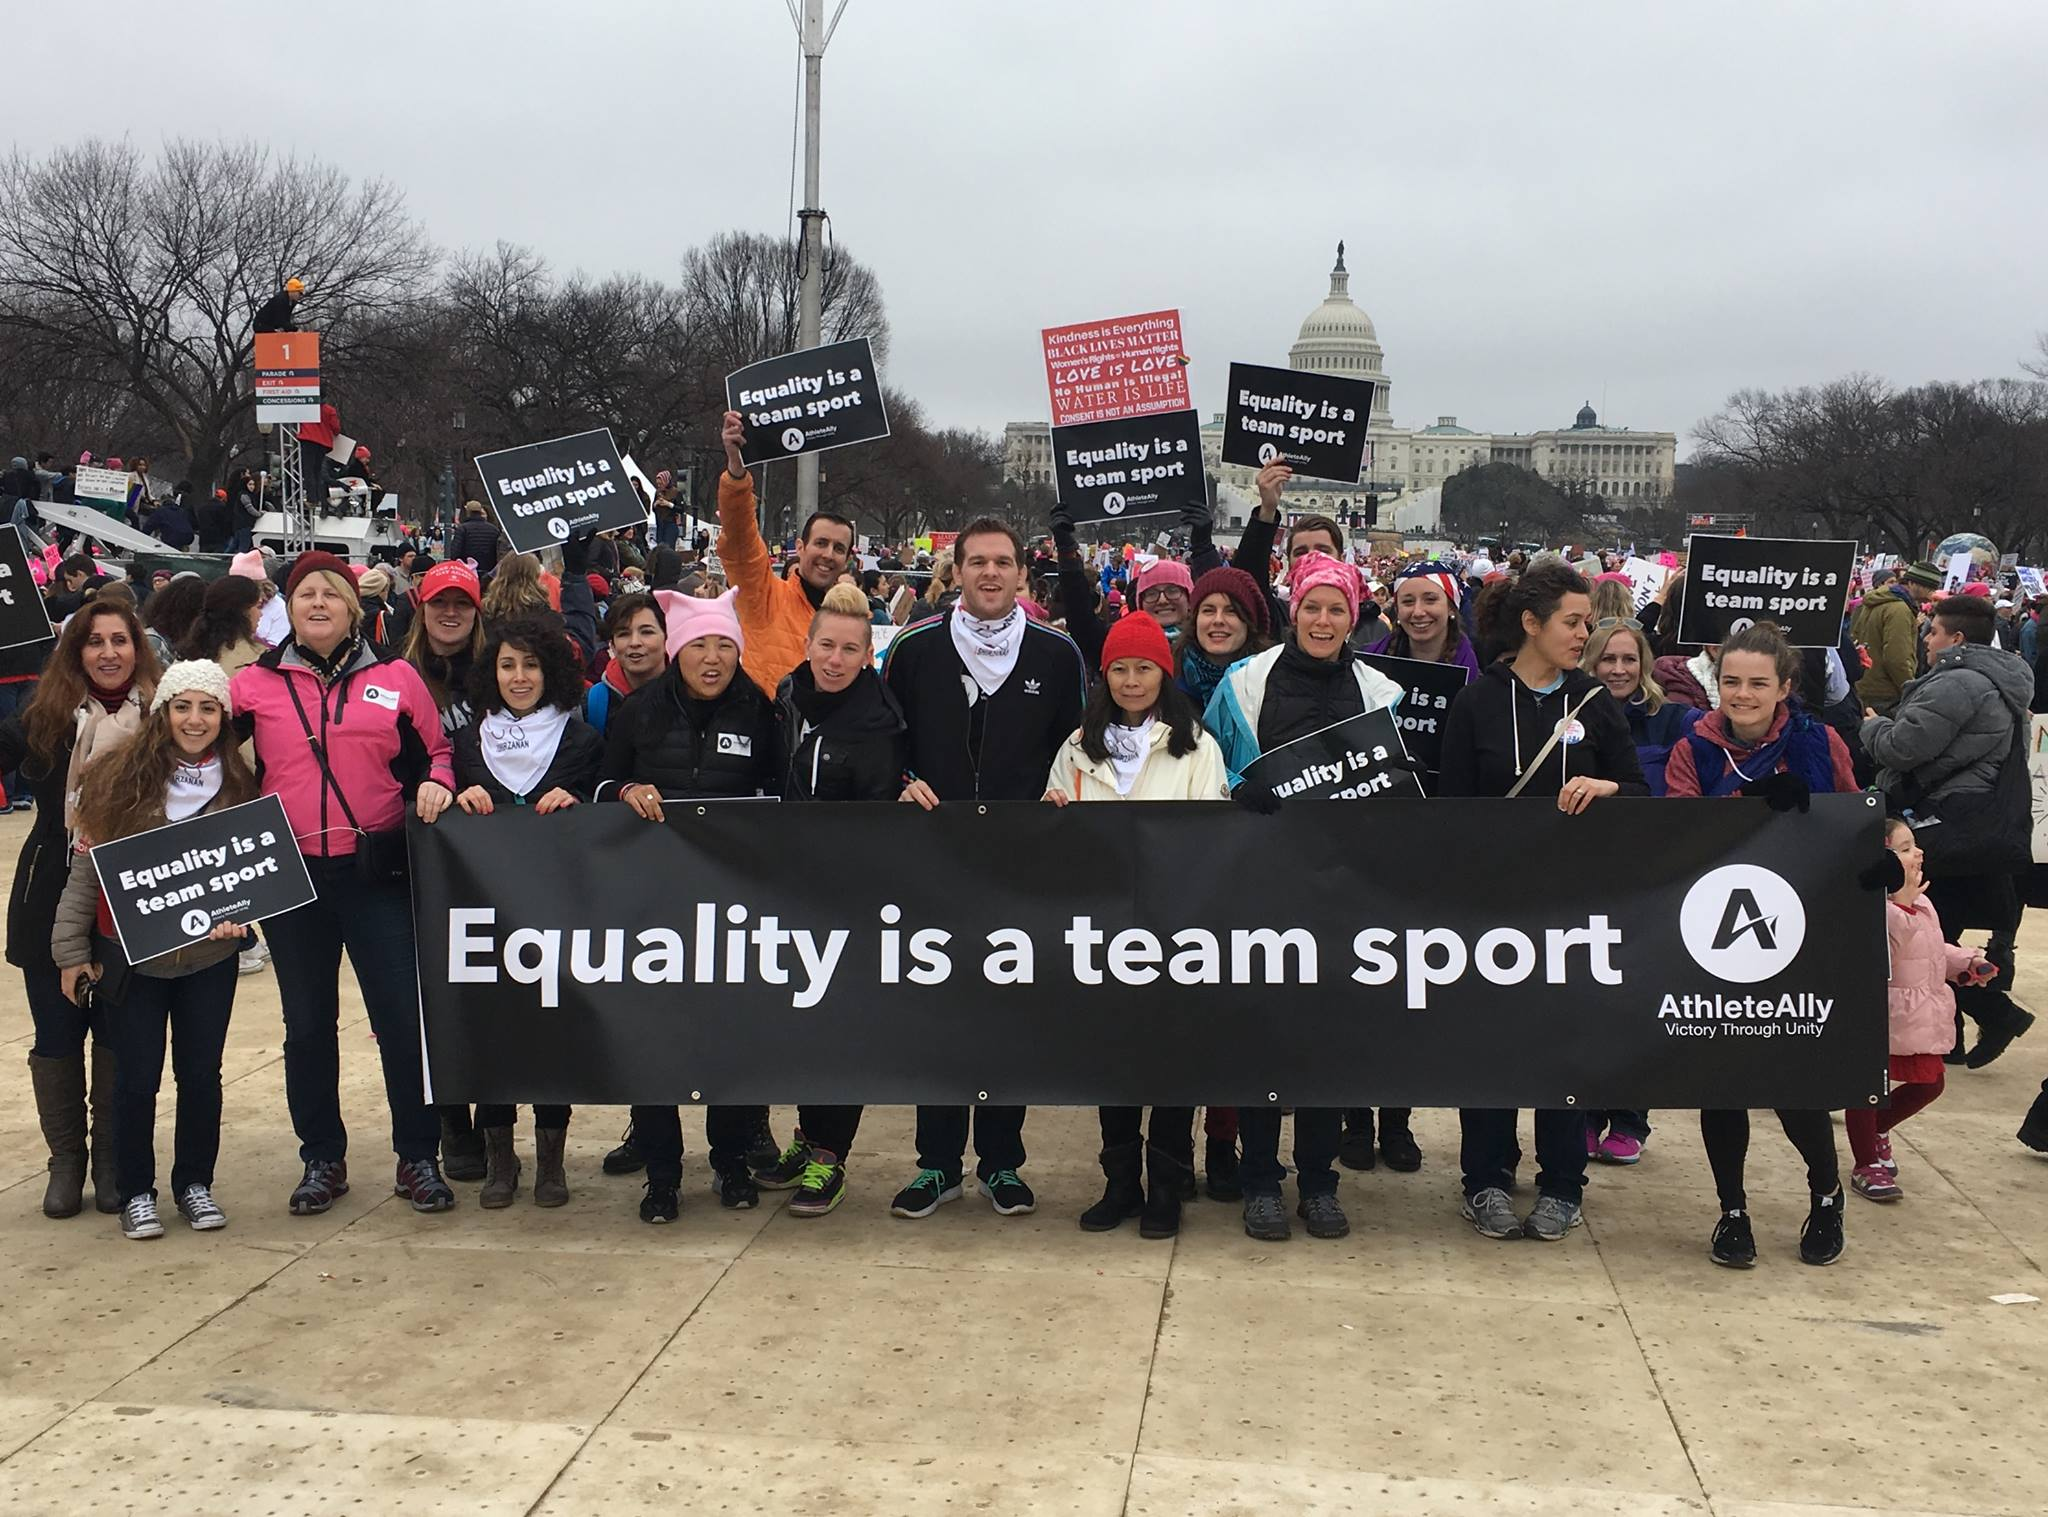 Athlete Ally with a banner in front of the U.S Capitol building.